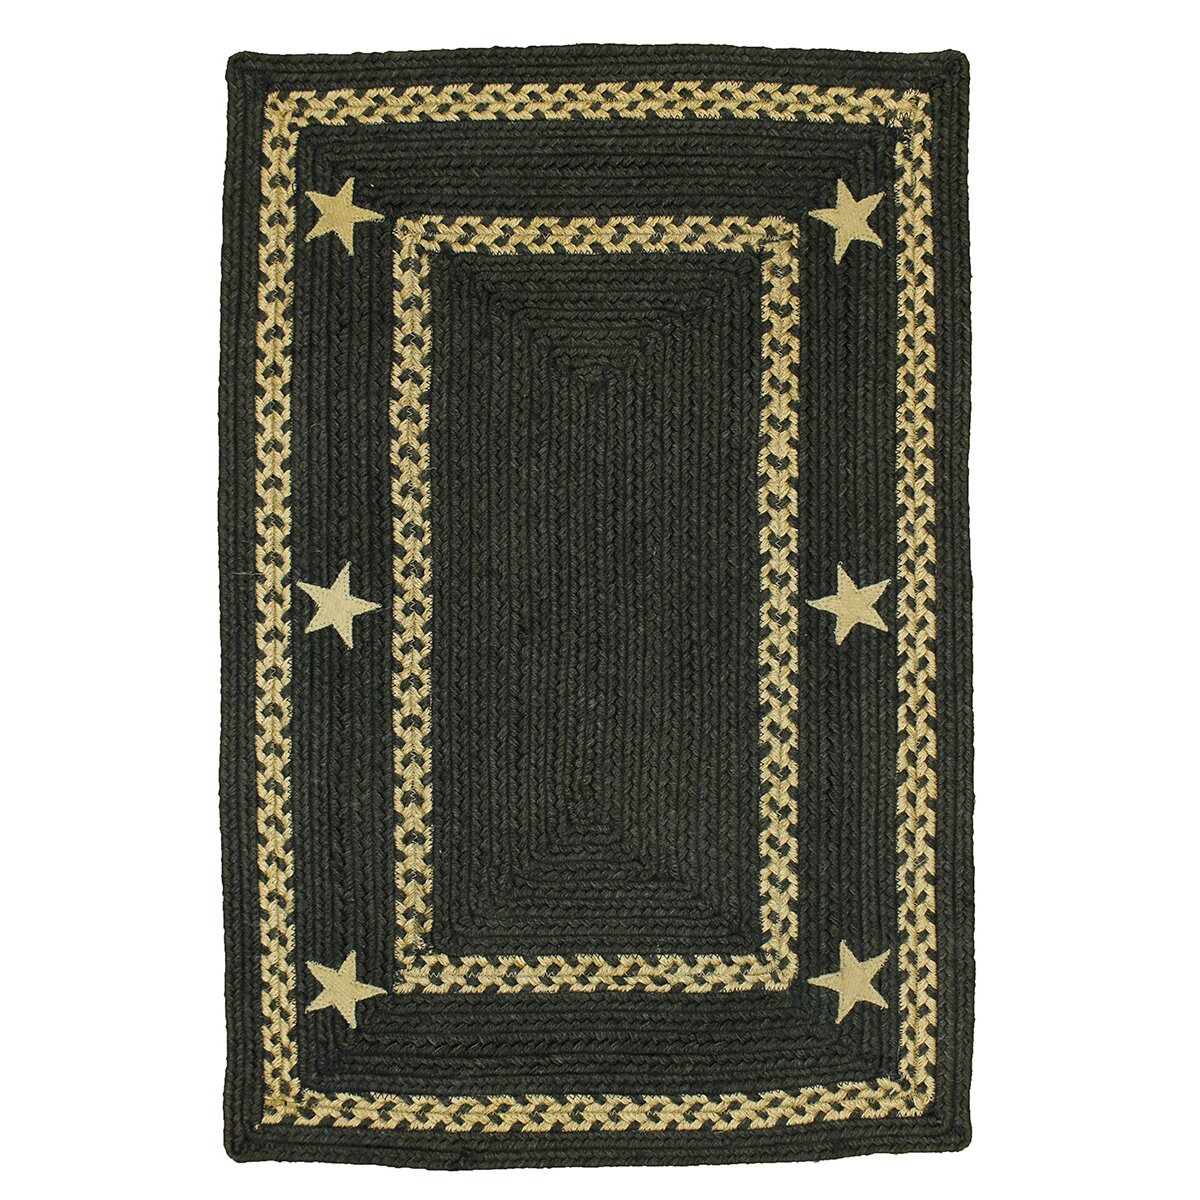 My Dog Ate Carpet Fibers: Homespice Decor Texas Star Jute Braided Black Area Rug